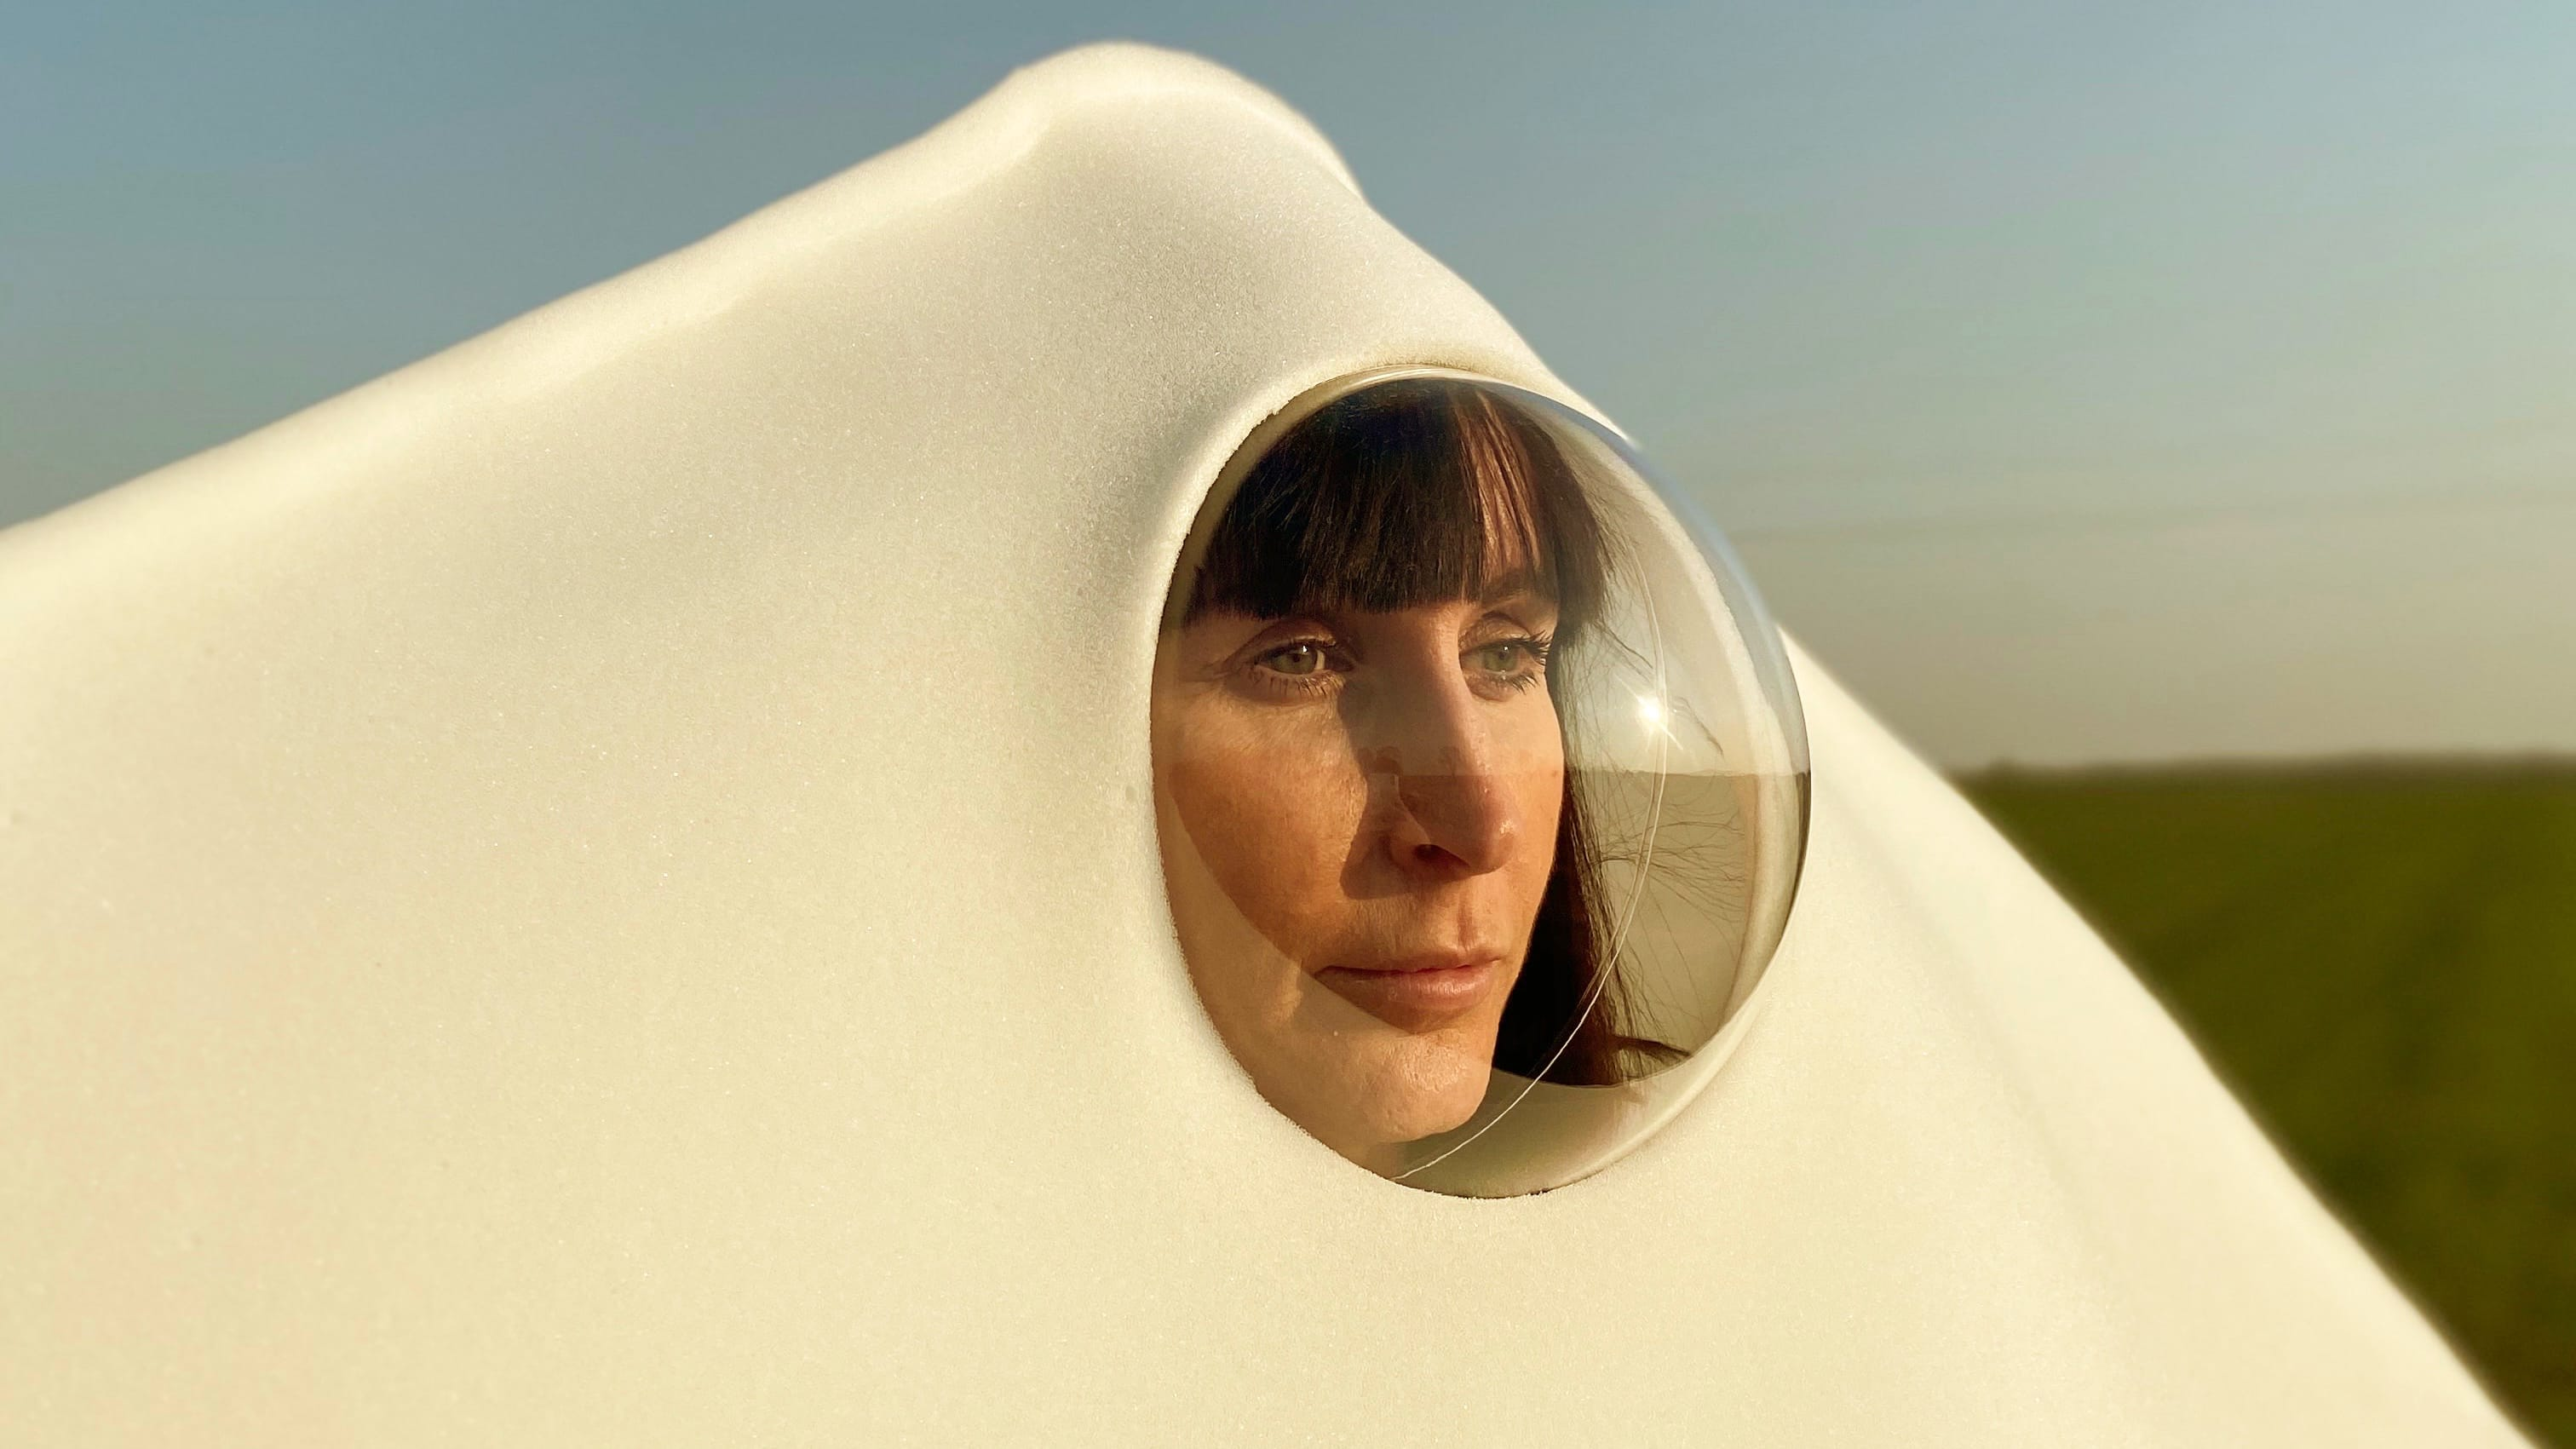 A person wearing a large piece of white material with a plastic bubble viewing hole